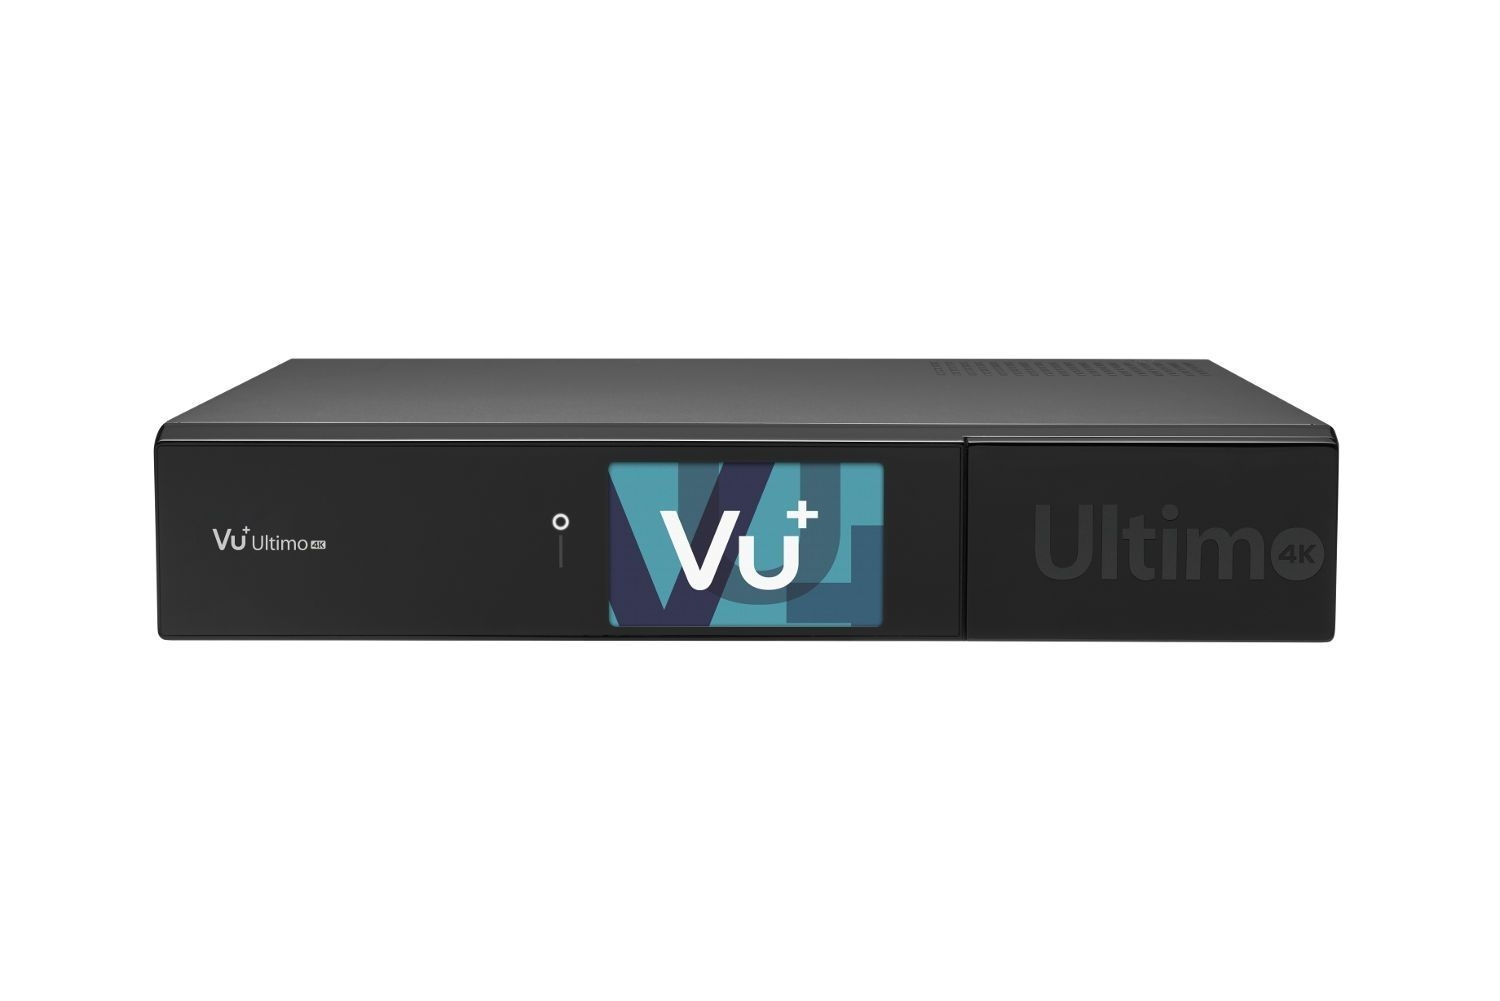 VU+ Ultimo 4K 2x DVB-C FBC / 1x DVB-S2 Dual Tuner 6 TB HDD Linux Receiver UHD 2160p